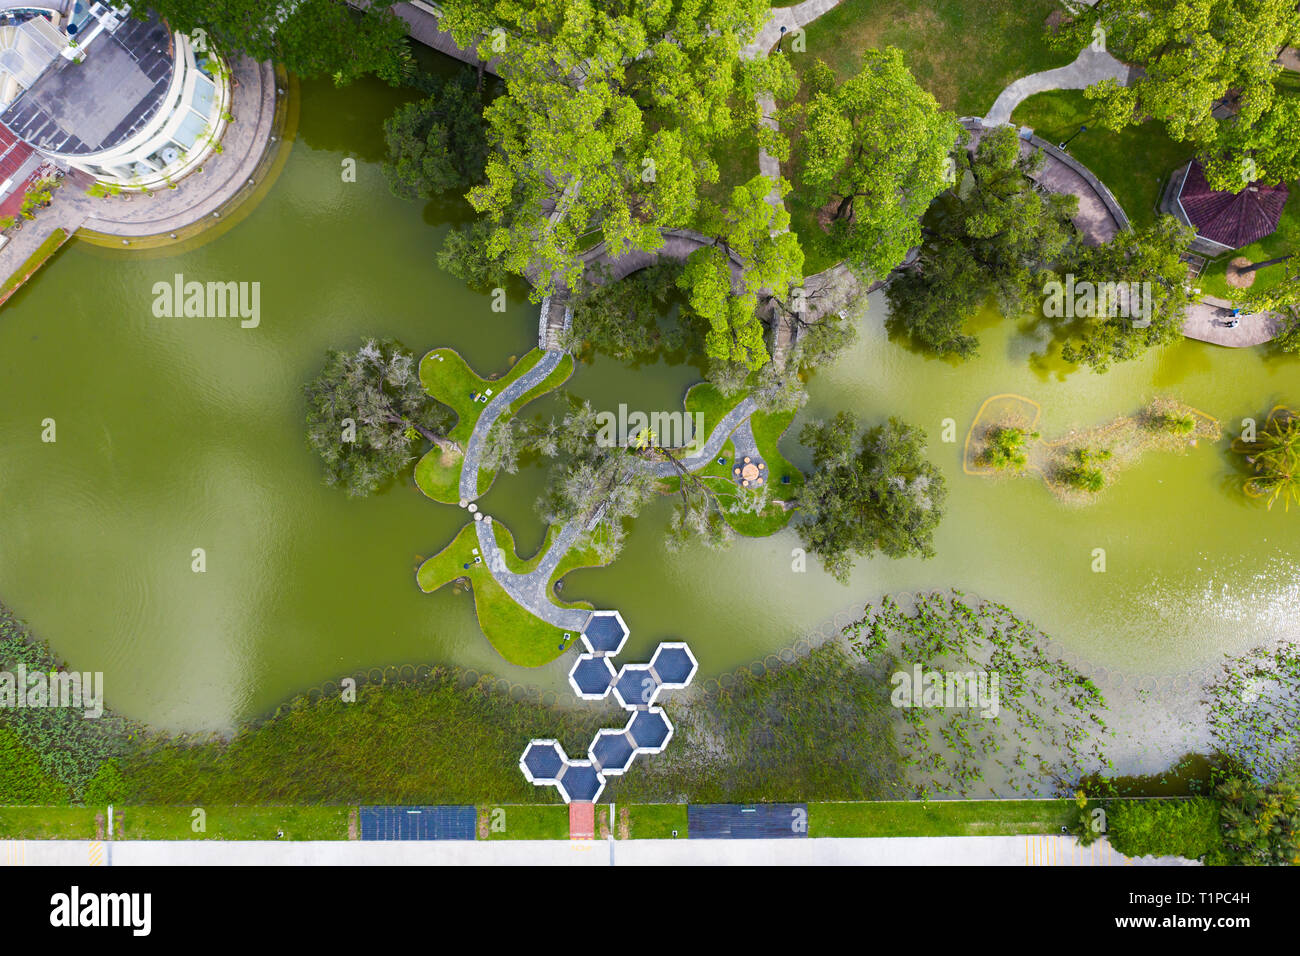 alternative perspective aerial view of Toa Payoh Town Park in Singapore. - Stock Image